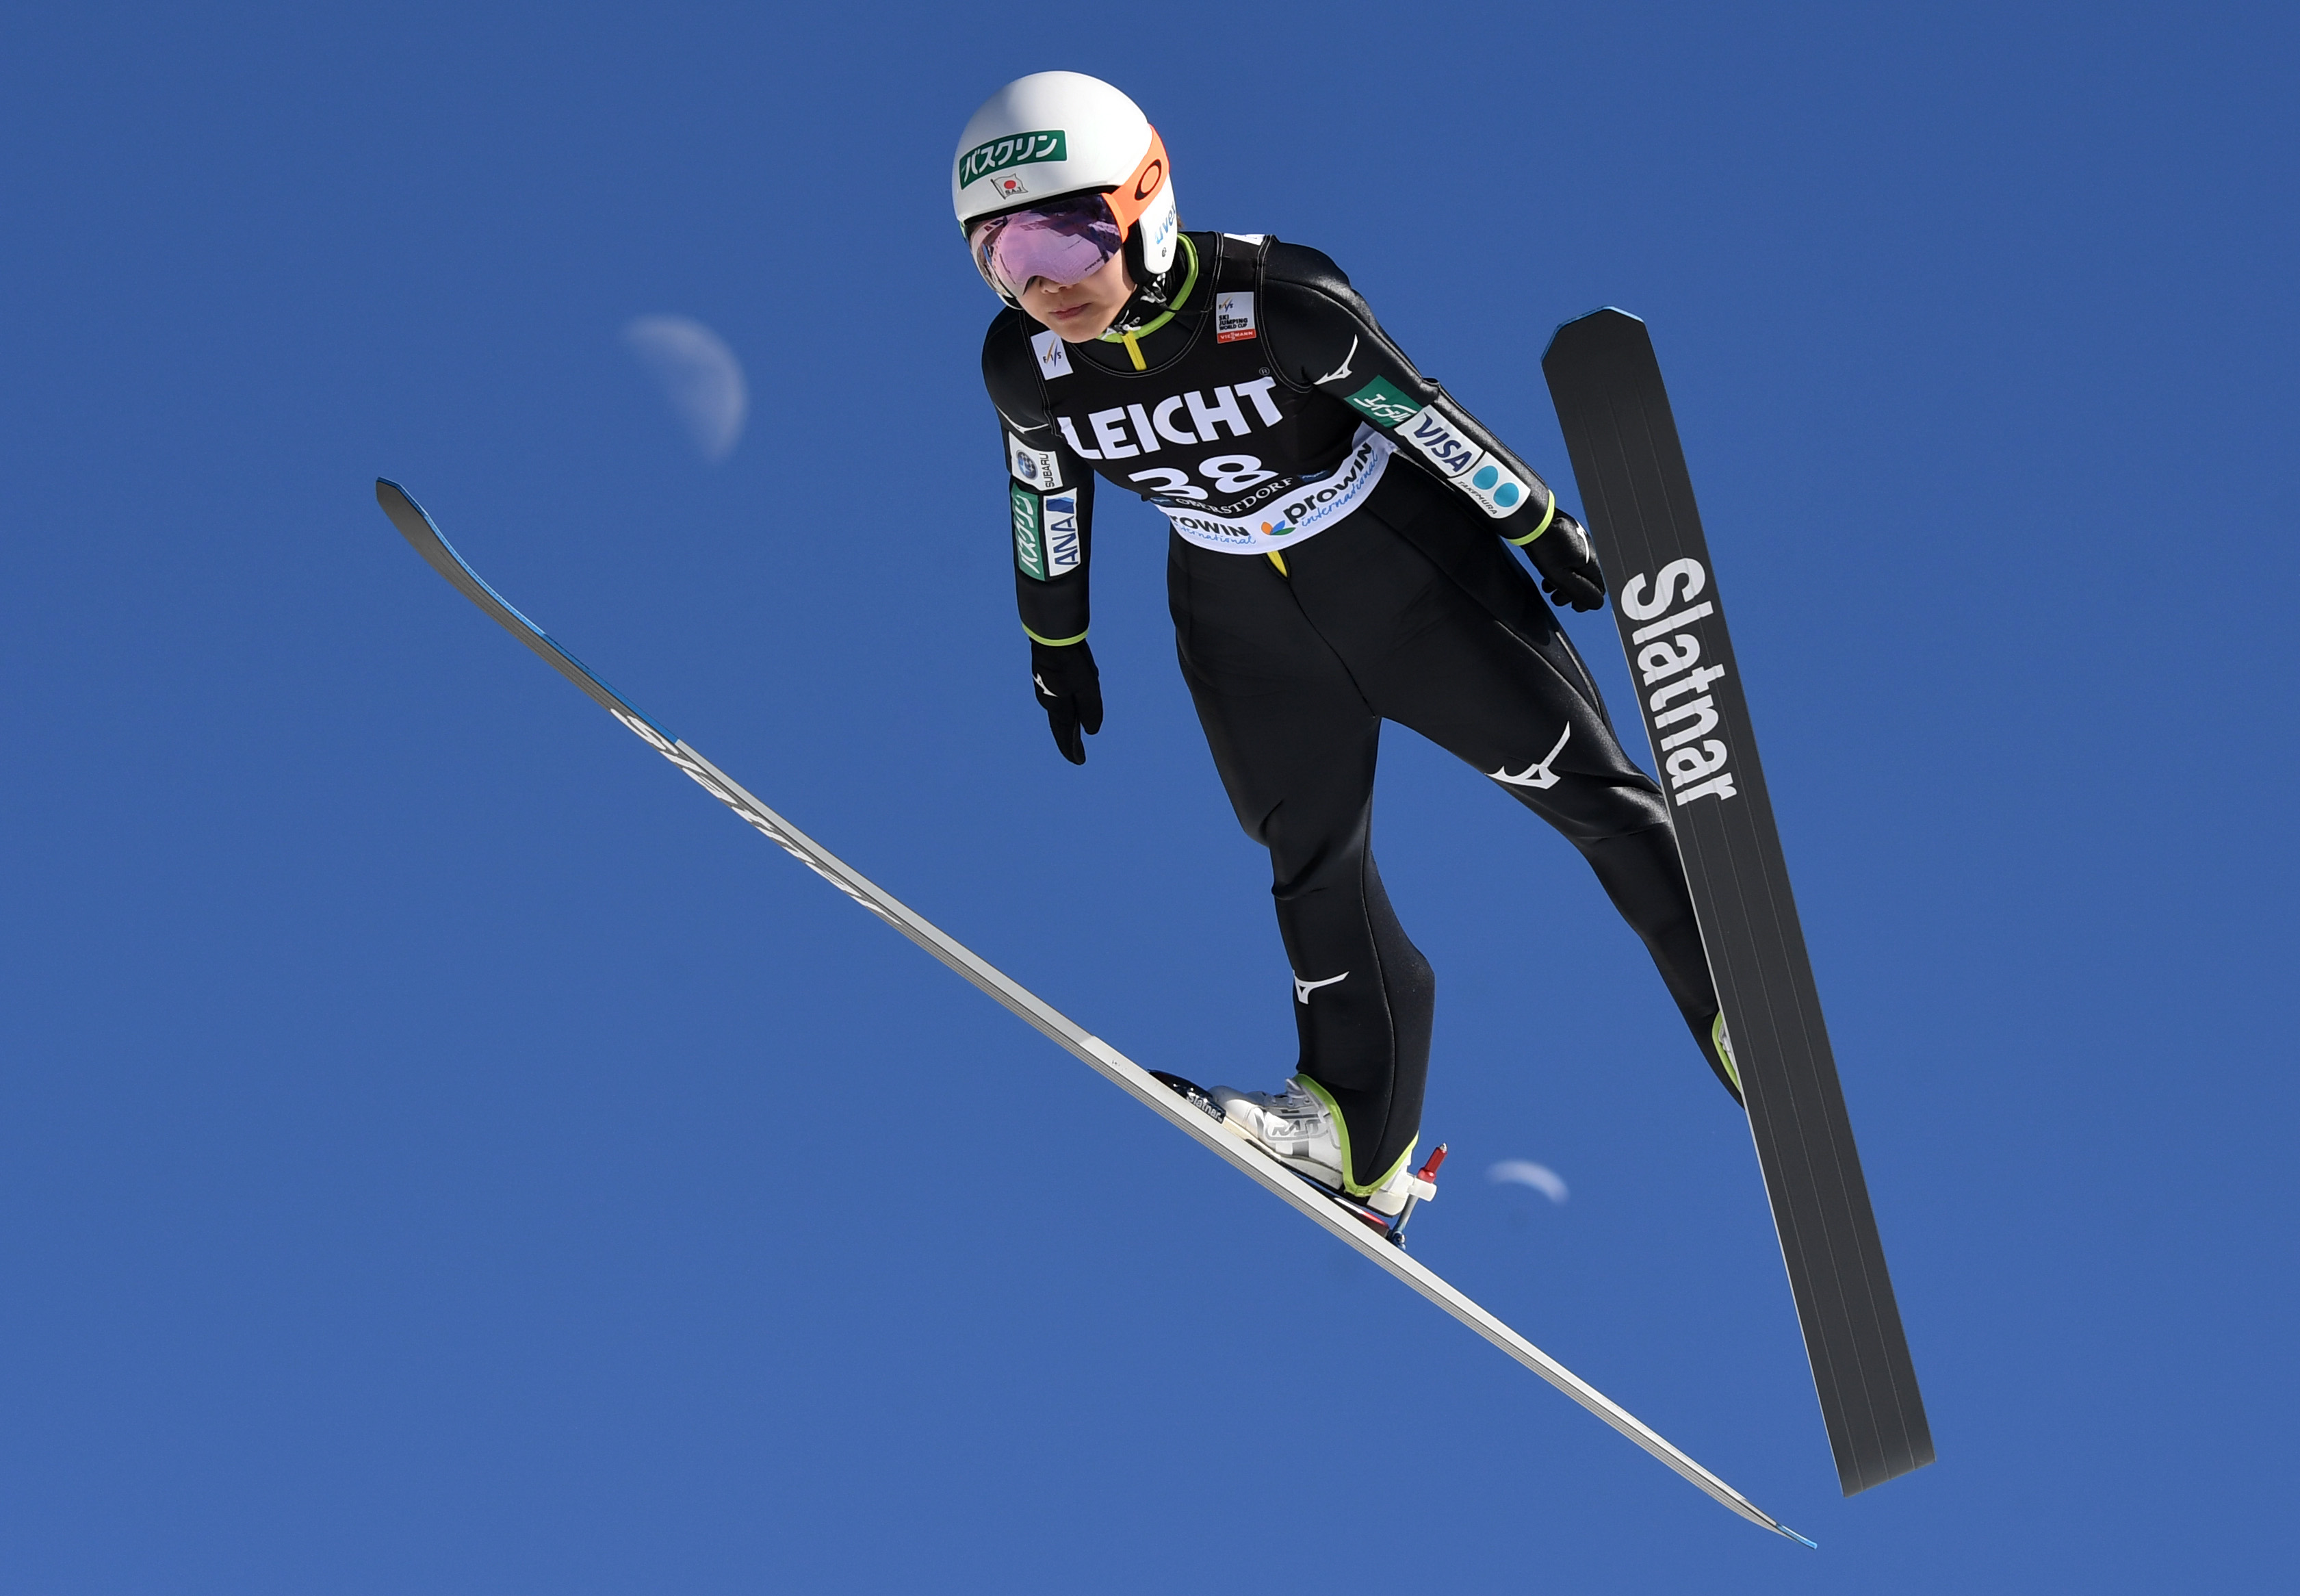 Sara Takanashi from Japan competes during her trial jump of the ski jumping World Cup Ladies competition in Oberstdorf, southern Germany, on March 24, 2018.  / AFP PHOTO / CHRISTOF STACHE